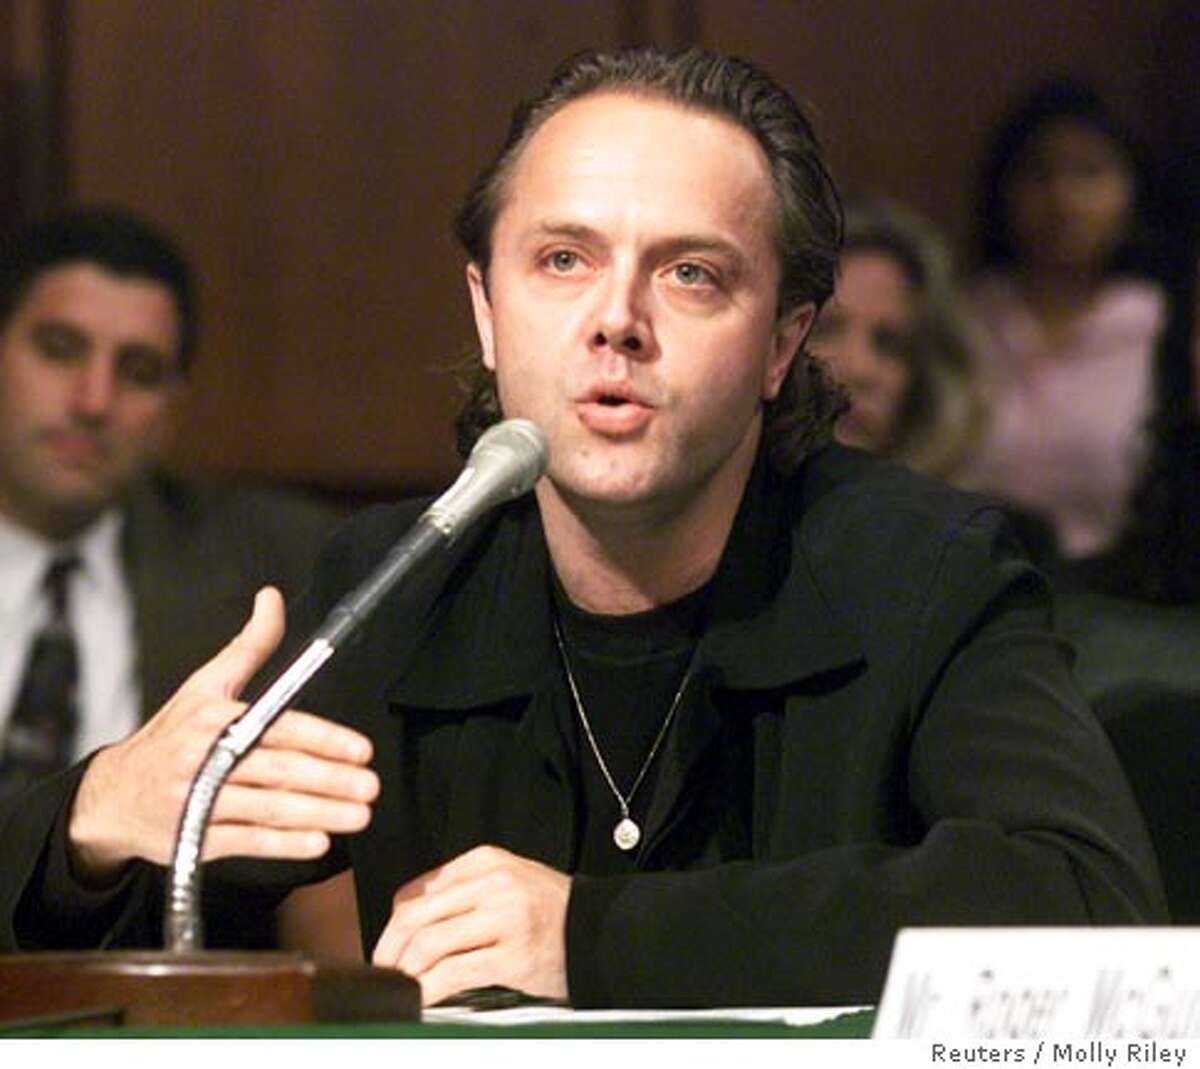 WAS11D:TECH-NAPSTER:WASHINGTON,11JUL00 - Lars Ulrich, the drummer of Metallica, testifies before a Senate Judiciary committee in Washington on the future of digital music, July 11. The hearing was held to examine whether there is an upside to downloading digital music with a focus on Internet websites like MP3.com and 'file-exchange' programs such as Napster and Gnutella. Metallica is suing Napster on its own for copyright infringement. mmr/Photo by Molly Riley REUTERS Ran on: 10-05-2006 Lars Ulrich, who testified before a Senate committee in July on the future of digital music.